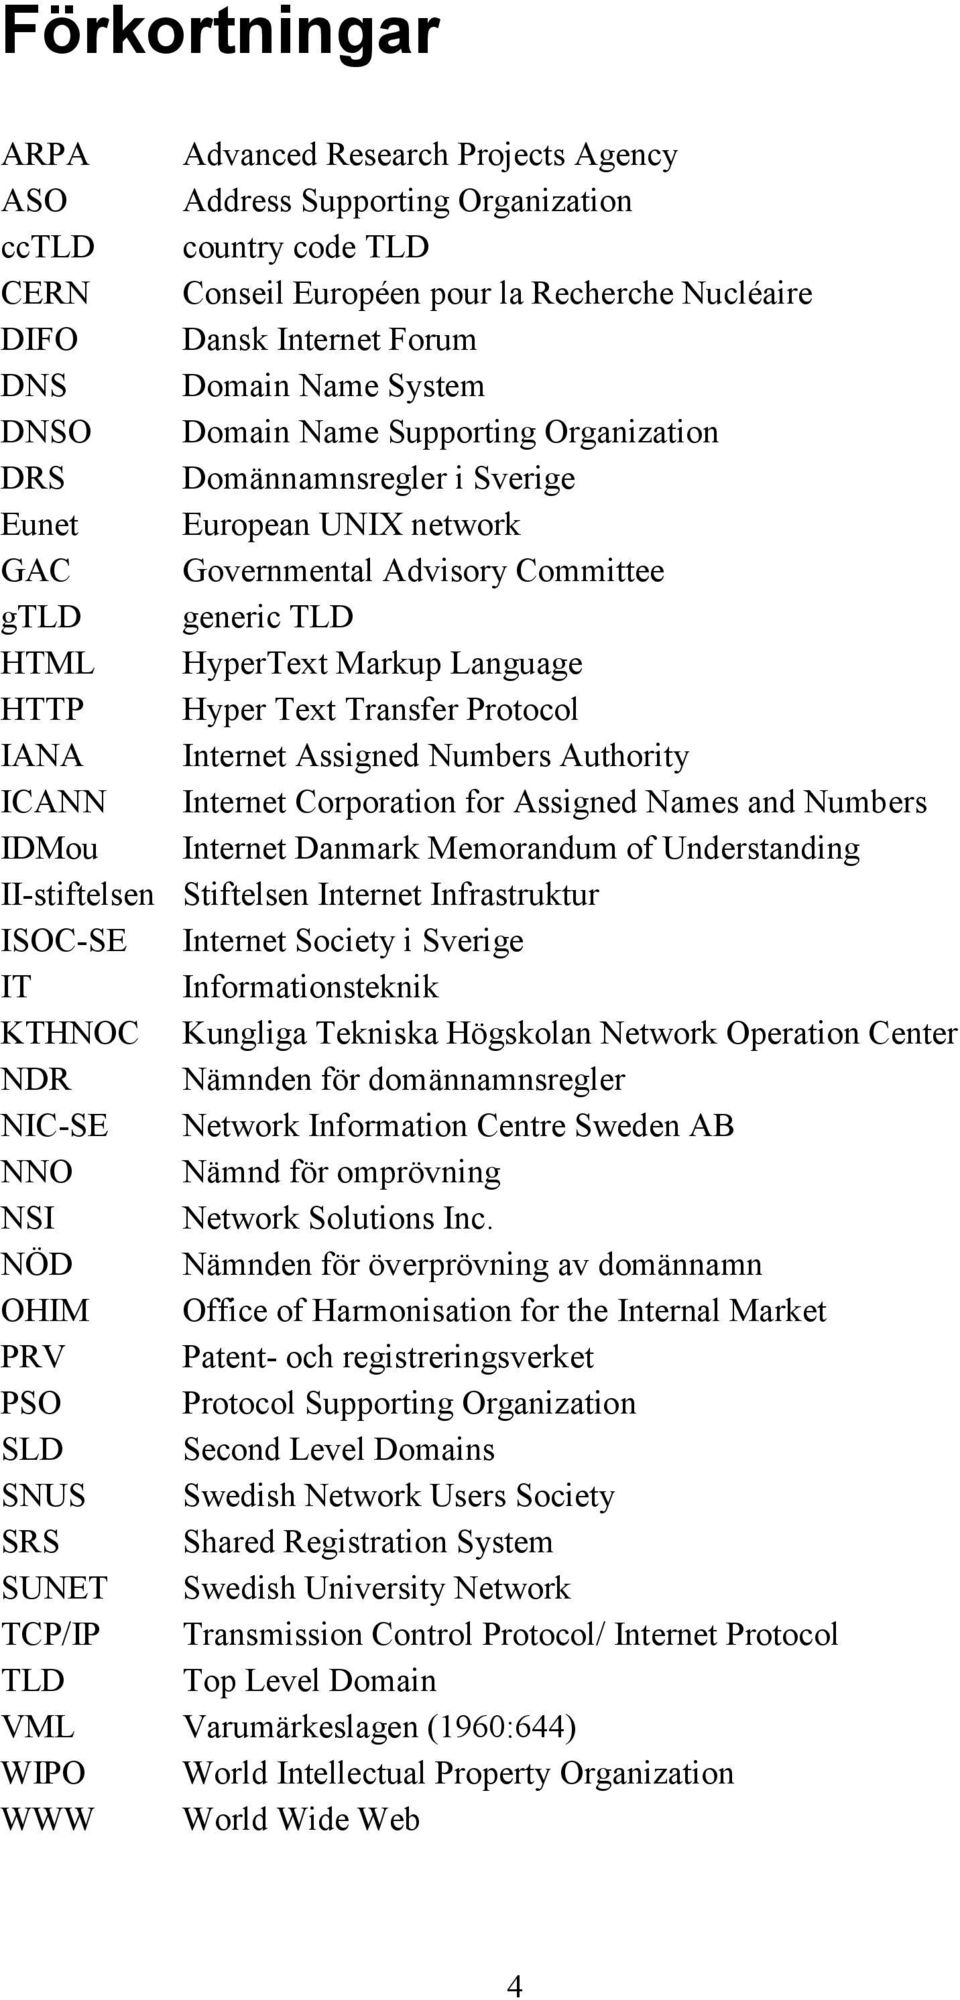 HTTP Hyper Text Transfer Protocol IANA Internet Assigned Numbers Authority ICANN Internet Corporation for Assigned Names and Numbers IDMou Internet Danmark Memorandum of Understanding II-stiftelsen